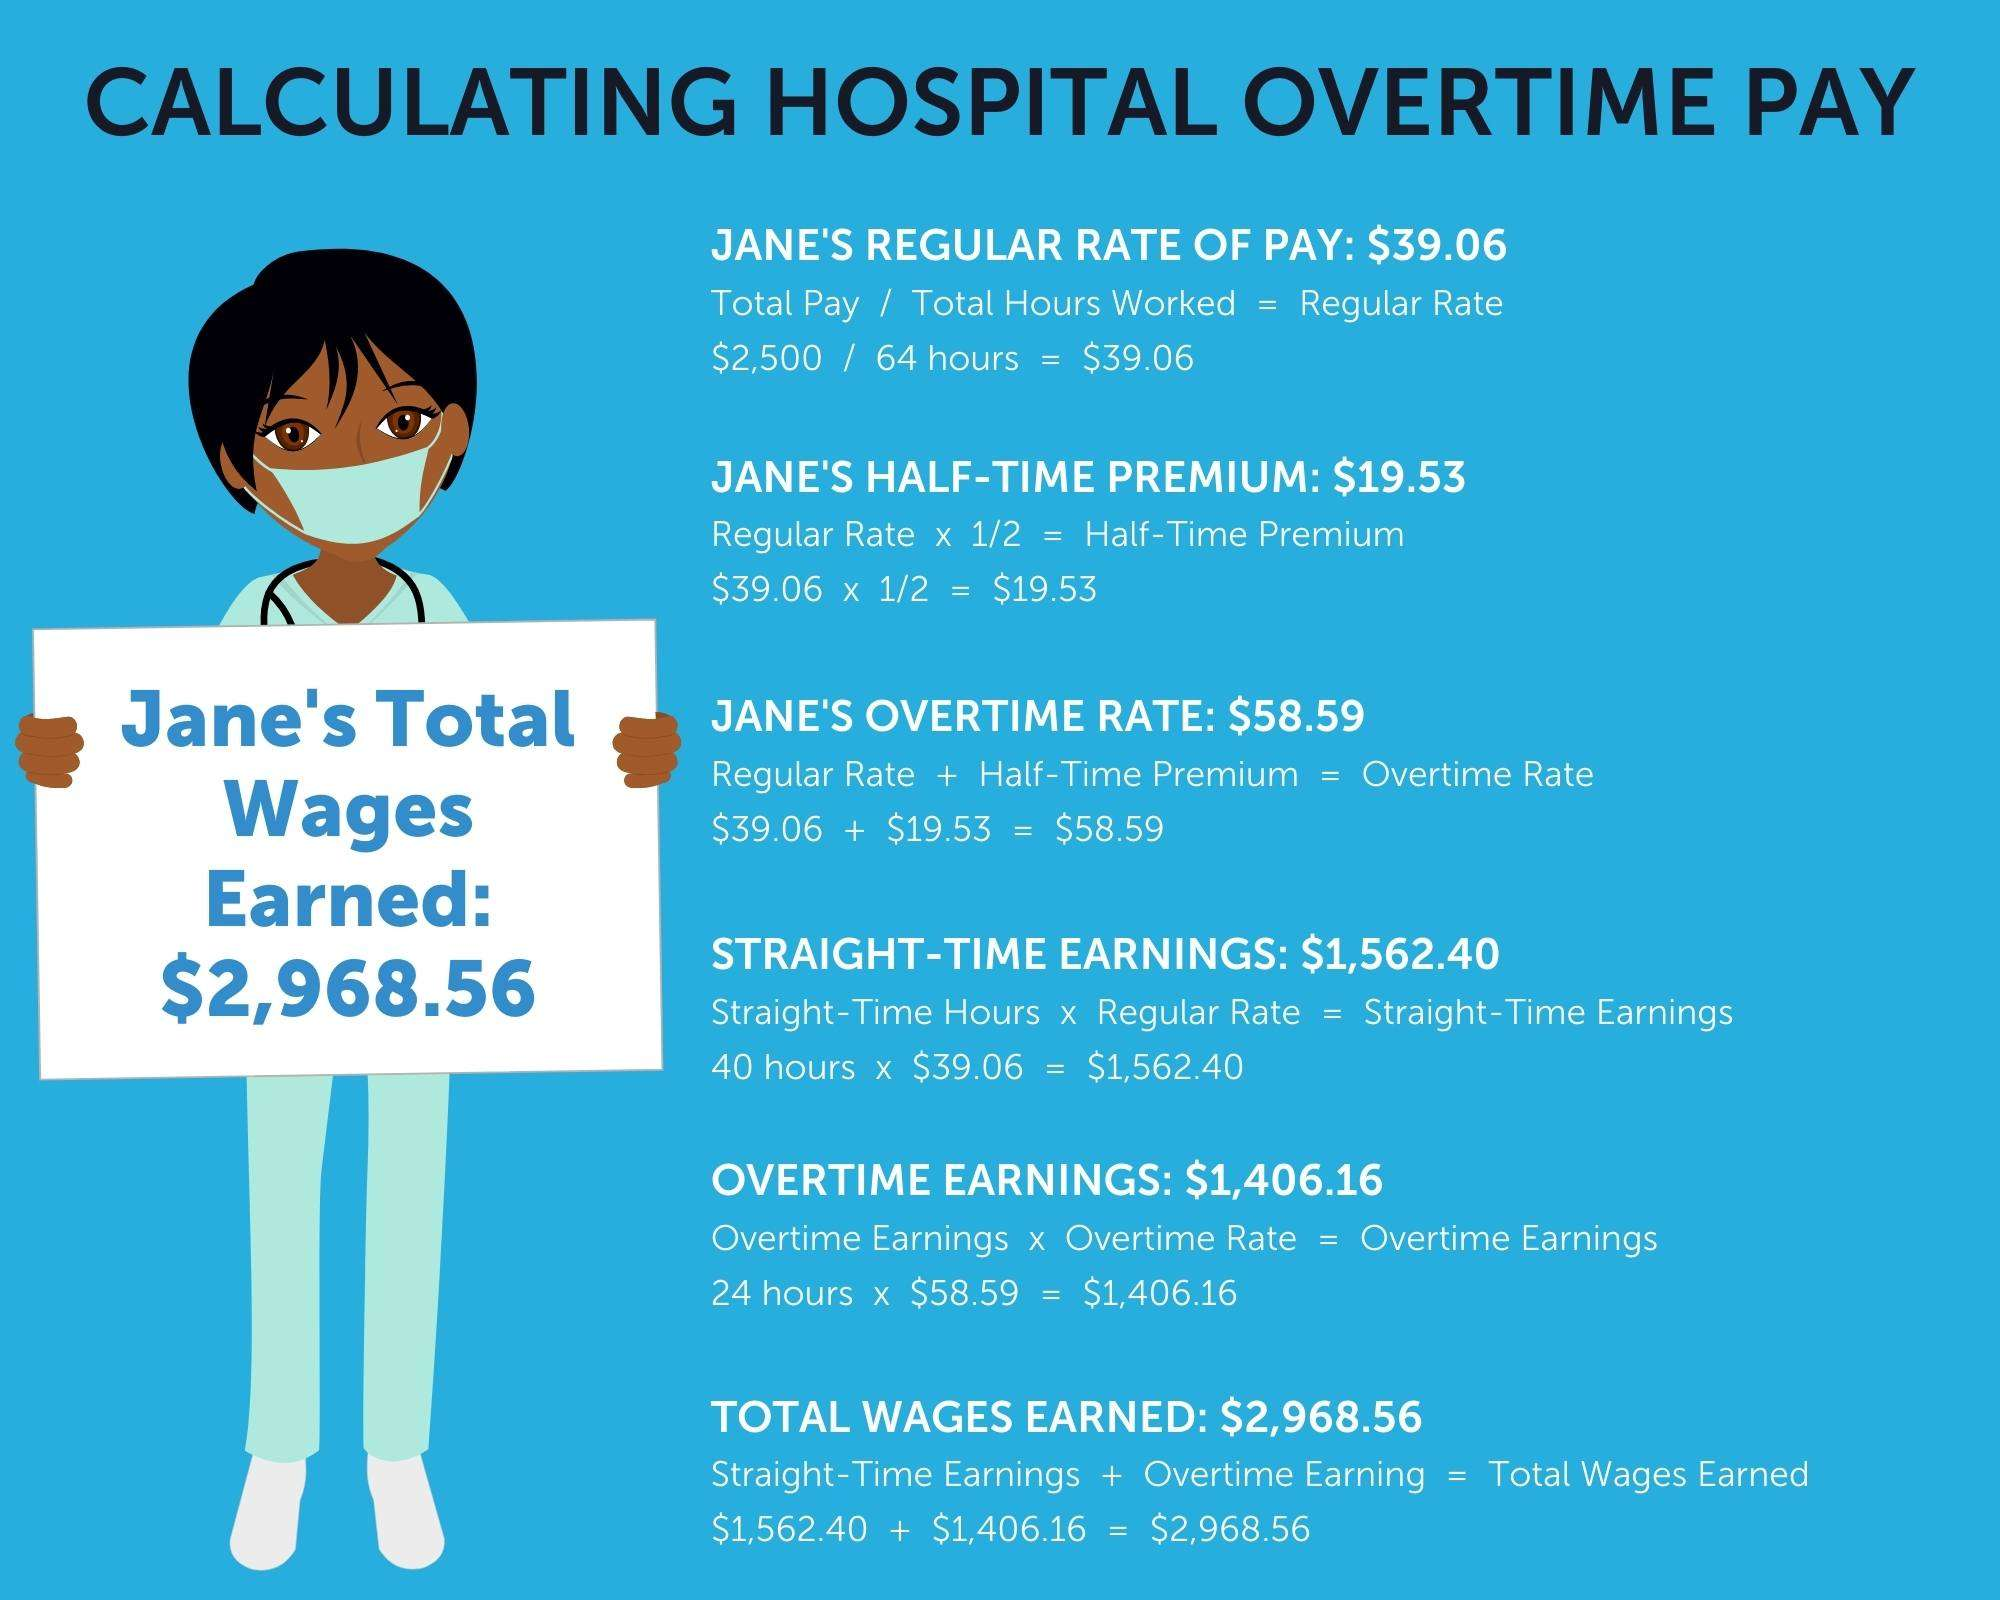 Calculating Hospital Overtime Pay